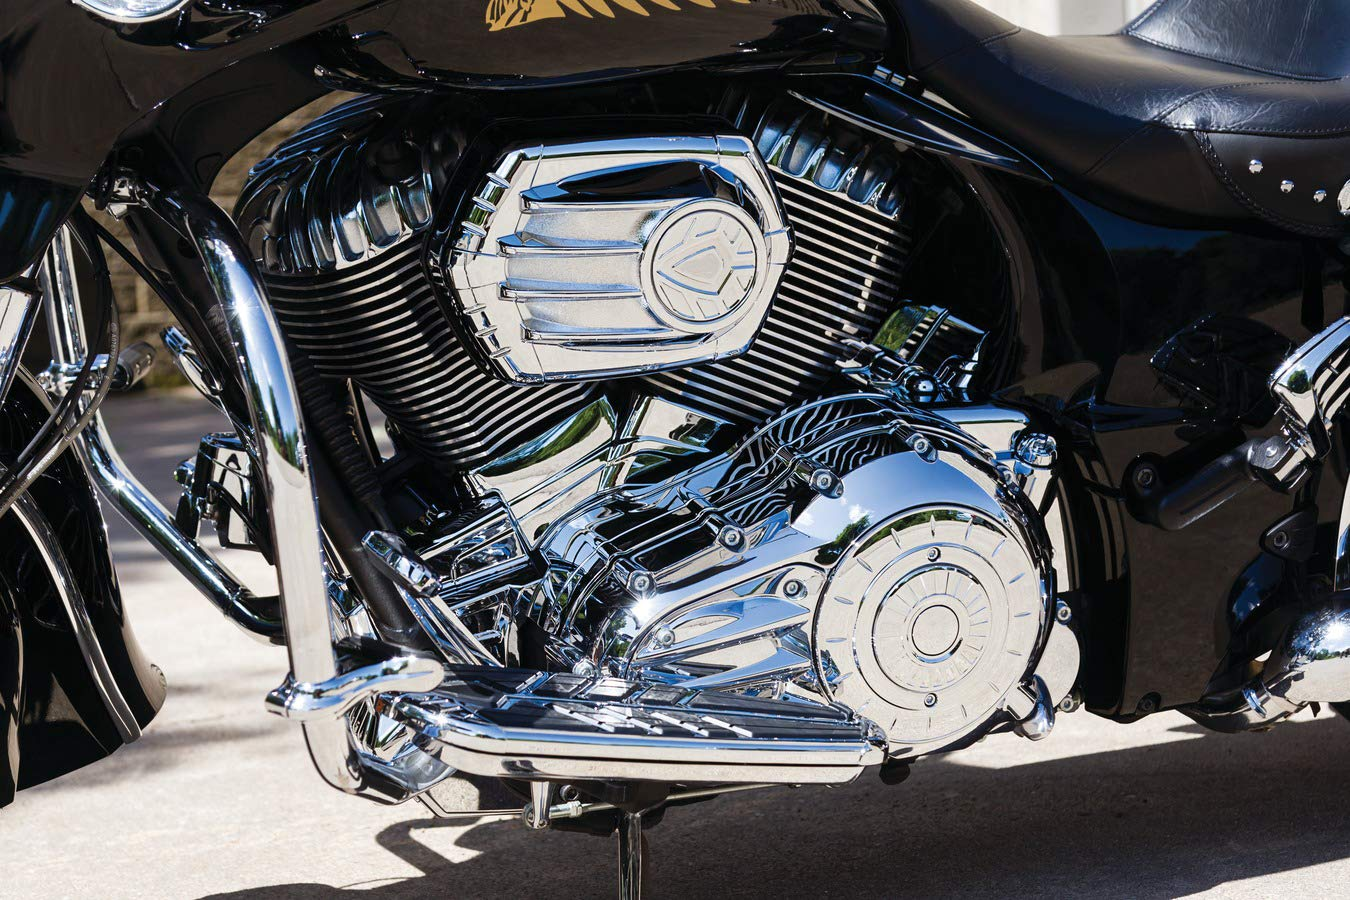 Kuryakyn 5642 Motorcycle Accent Accessory Chrome Starter End Cover for 2014-19 Indian Motorcycles